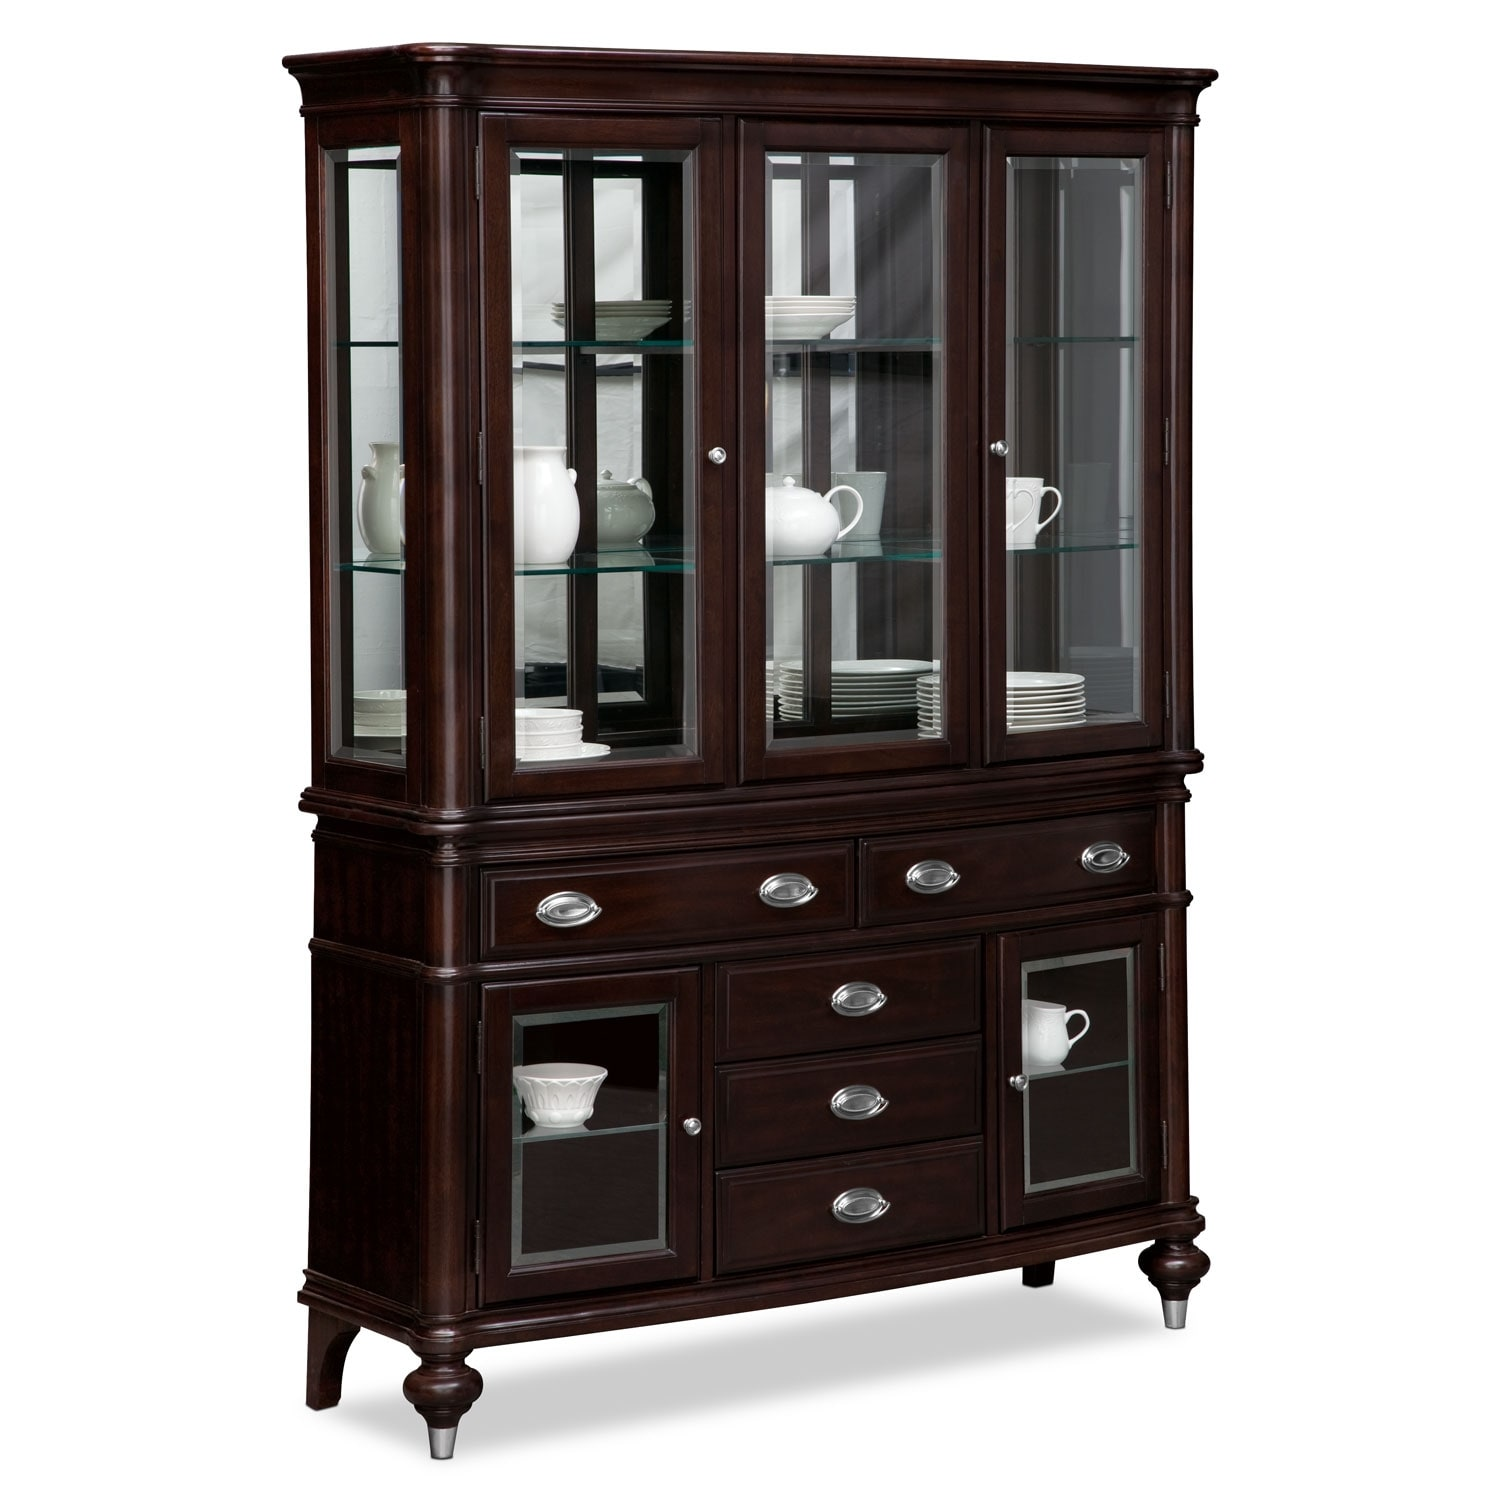 Esquire Buffet and Hutch - Cherry  sc 1 st  American Signature Furniture & Buffet u0026 Sideboard Cabinets | American Signature Furniture